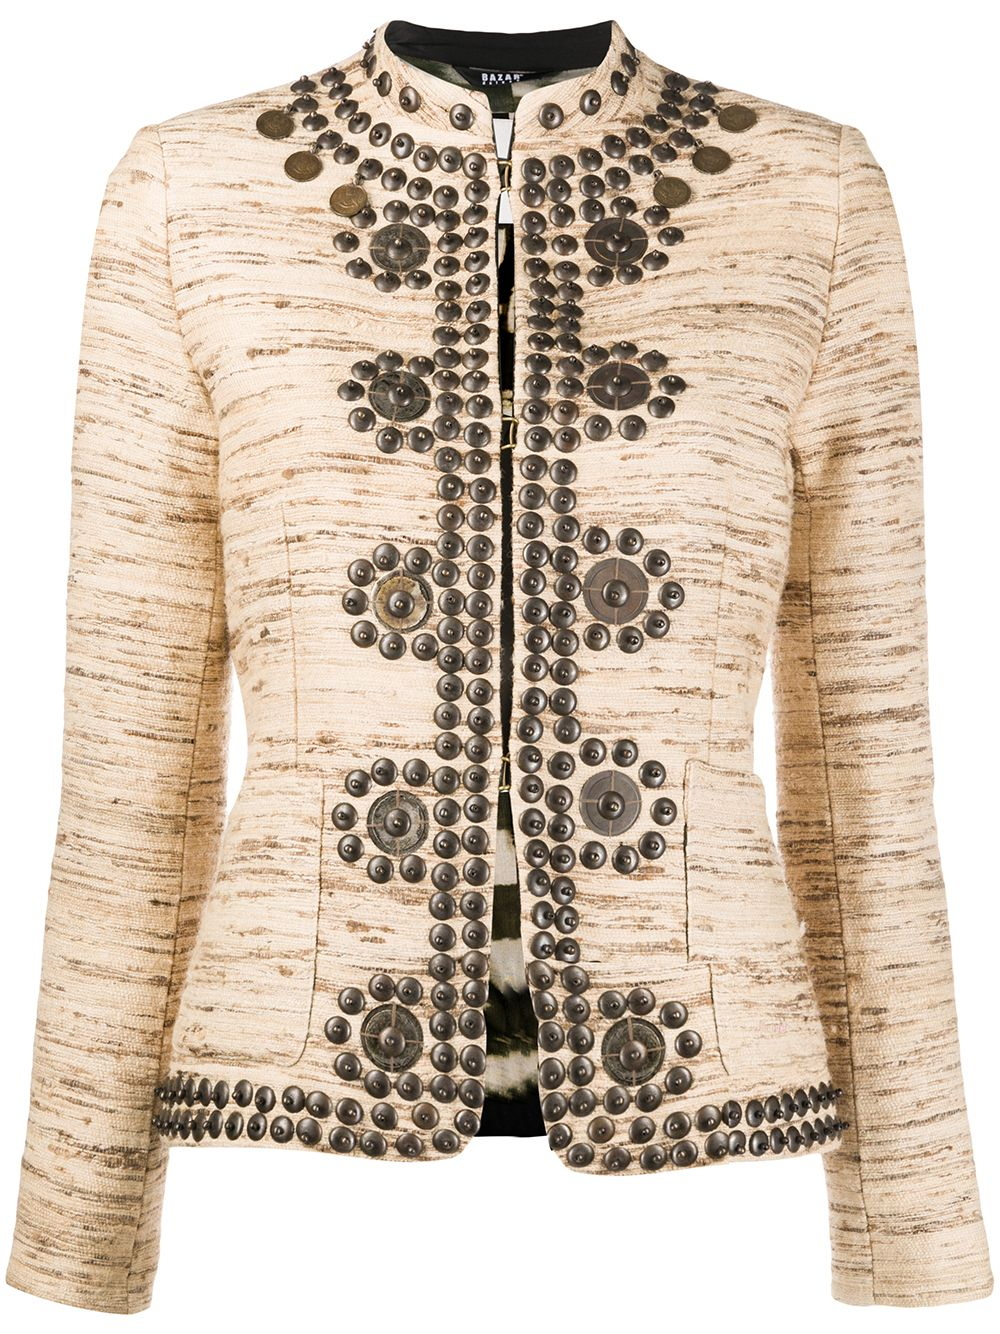 Cotton And Silk Jacquard Embellished Jacket